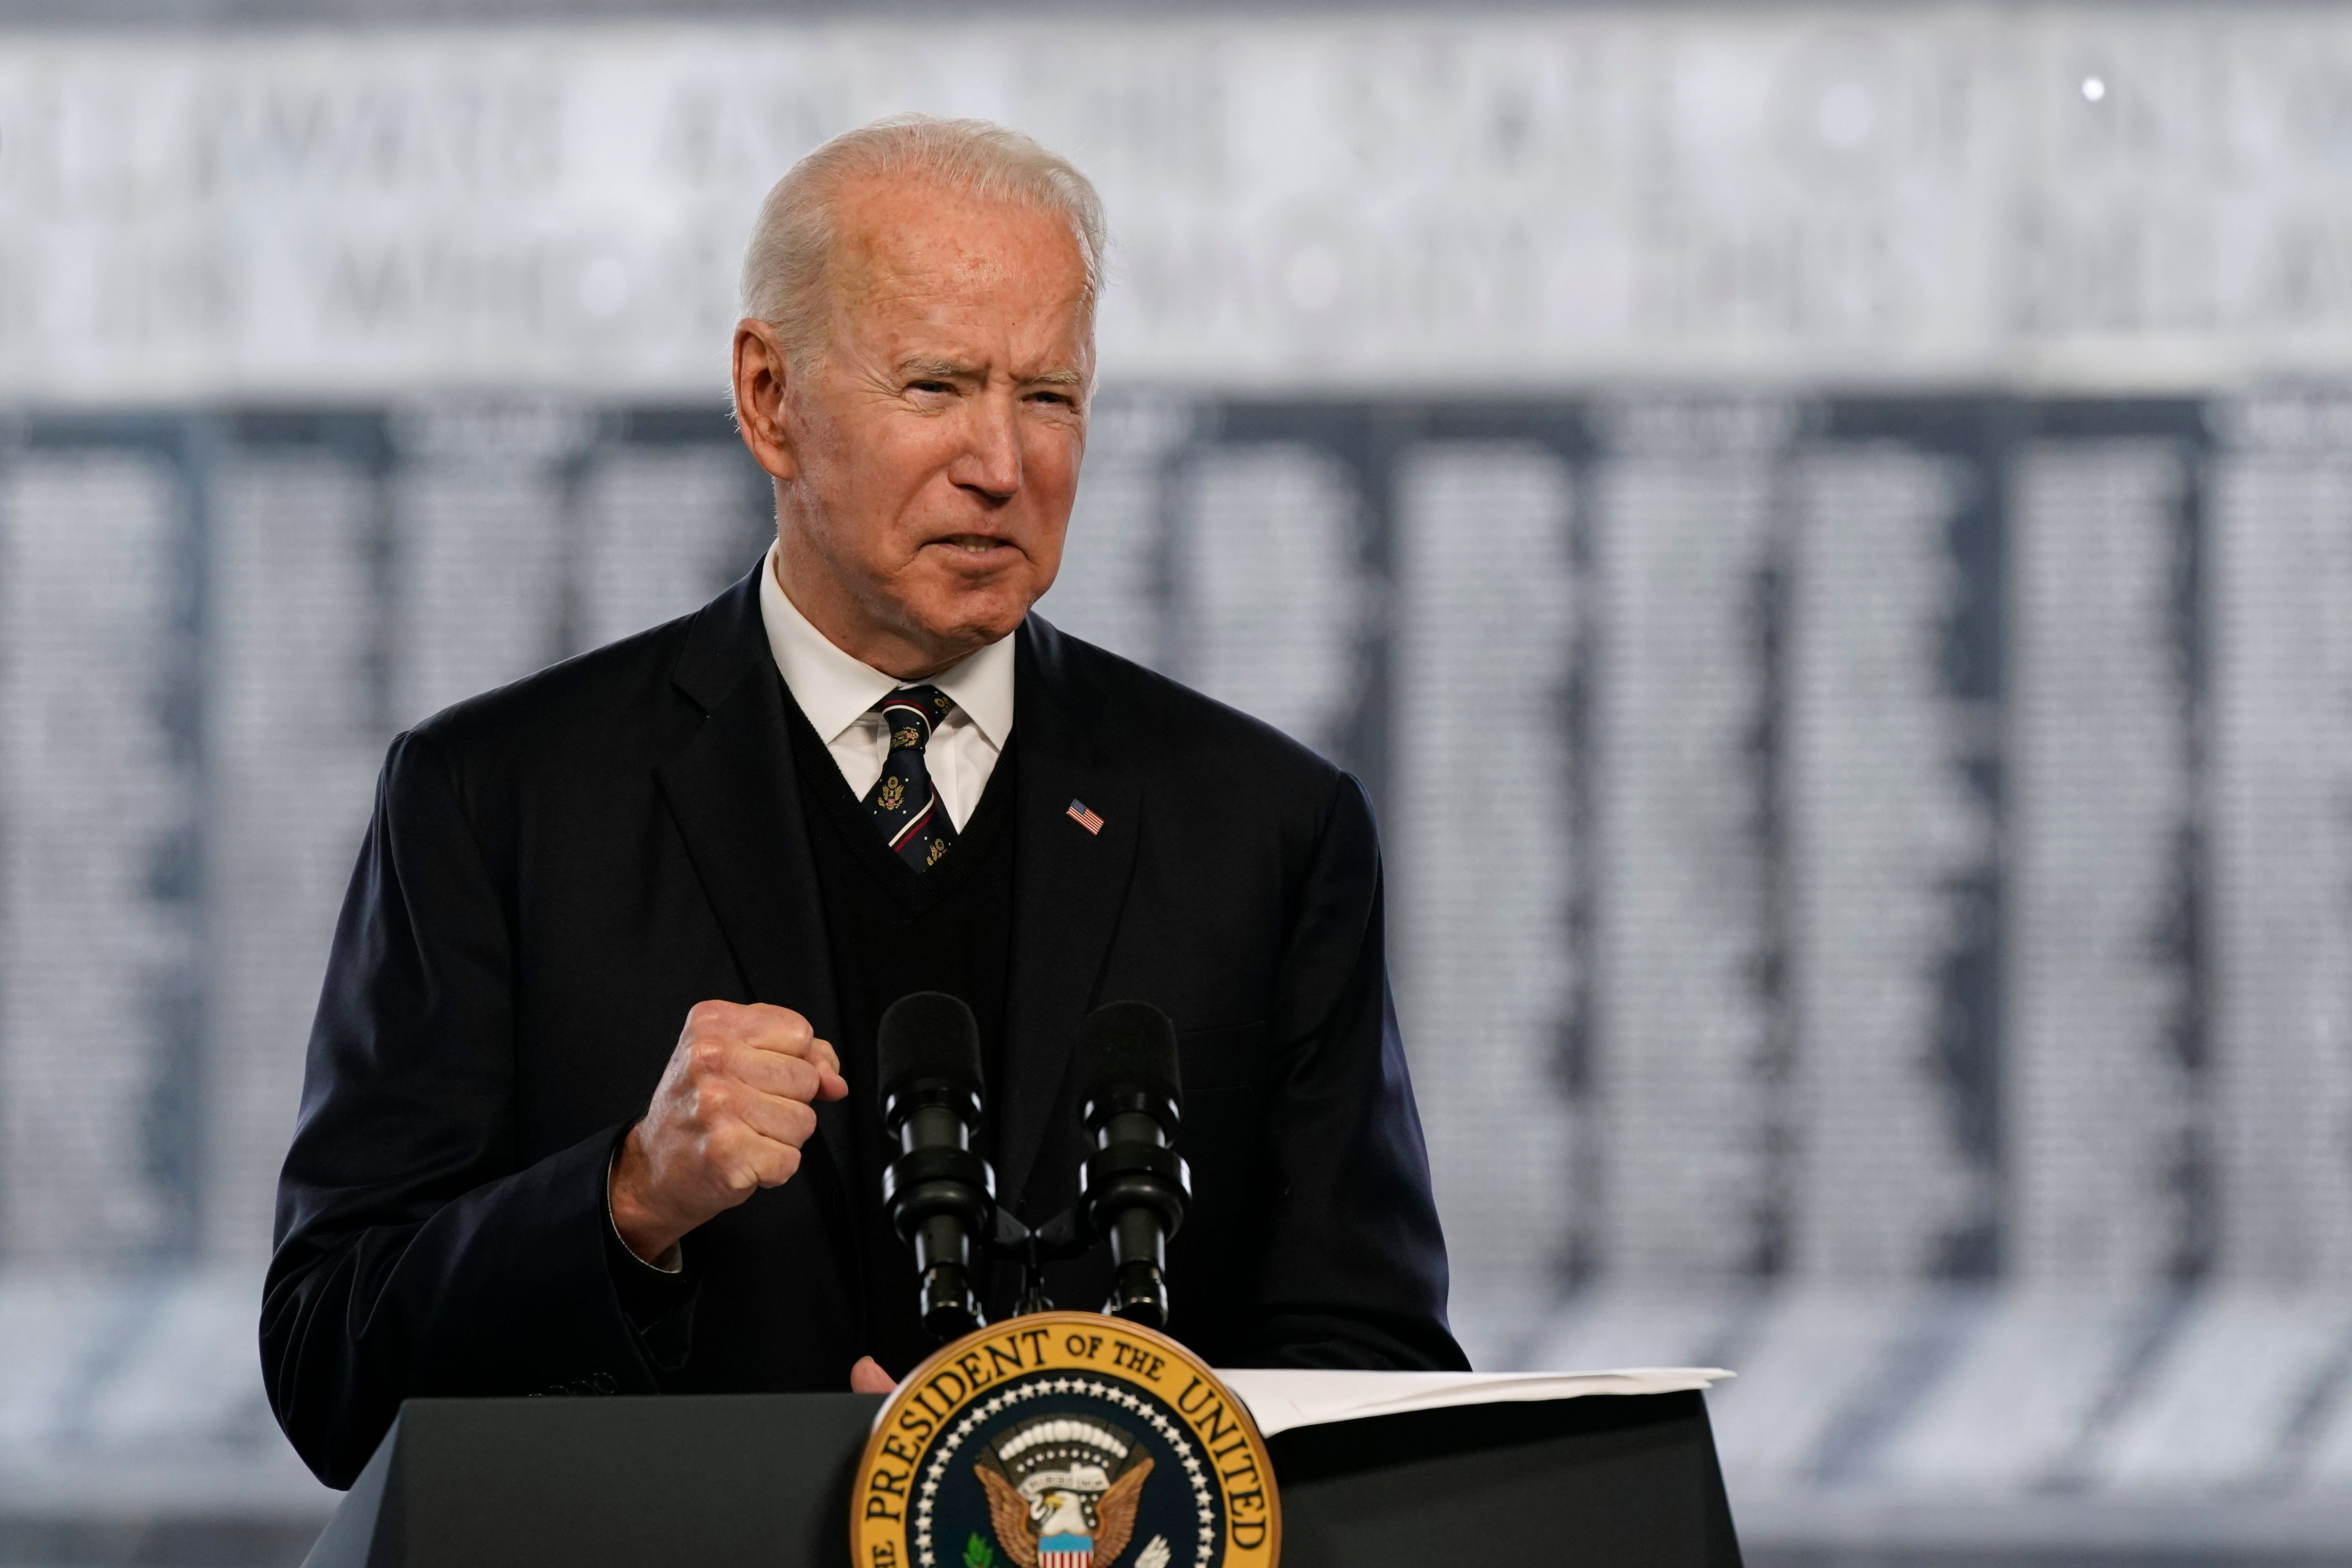 For Biden, a deeply personal Memorial Day weekend observance 2